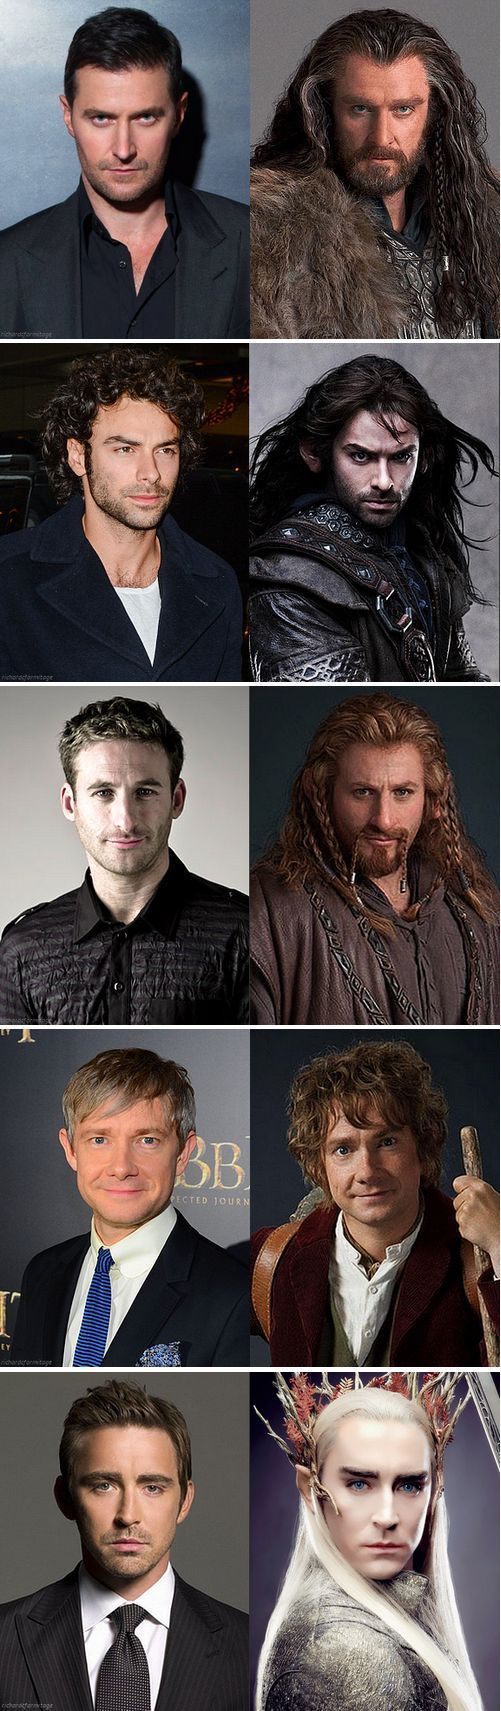 The Hobbit Cast Memebers   The hobbit, Lord of the rings